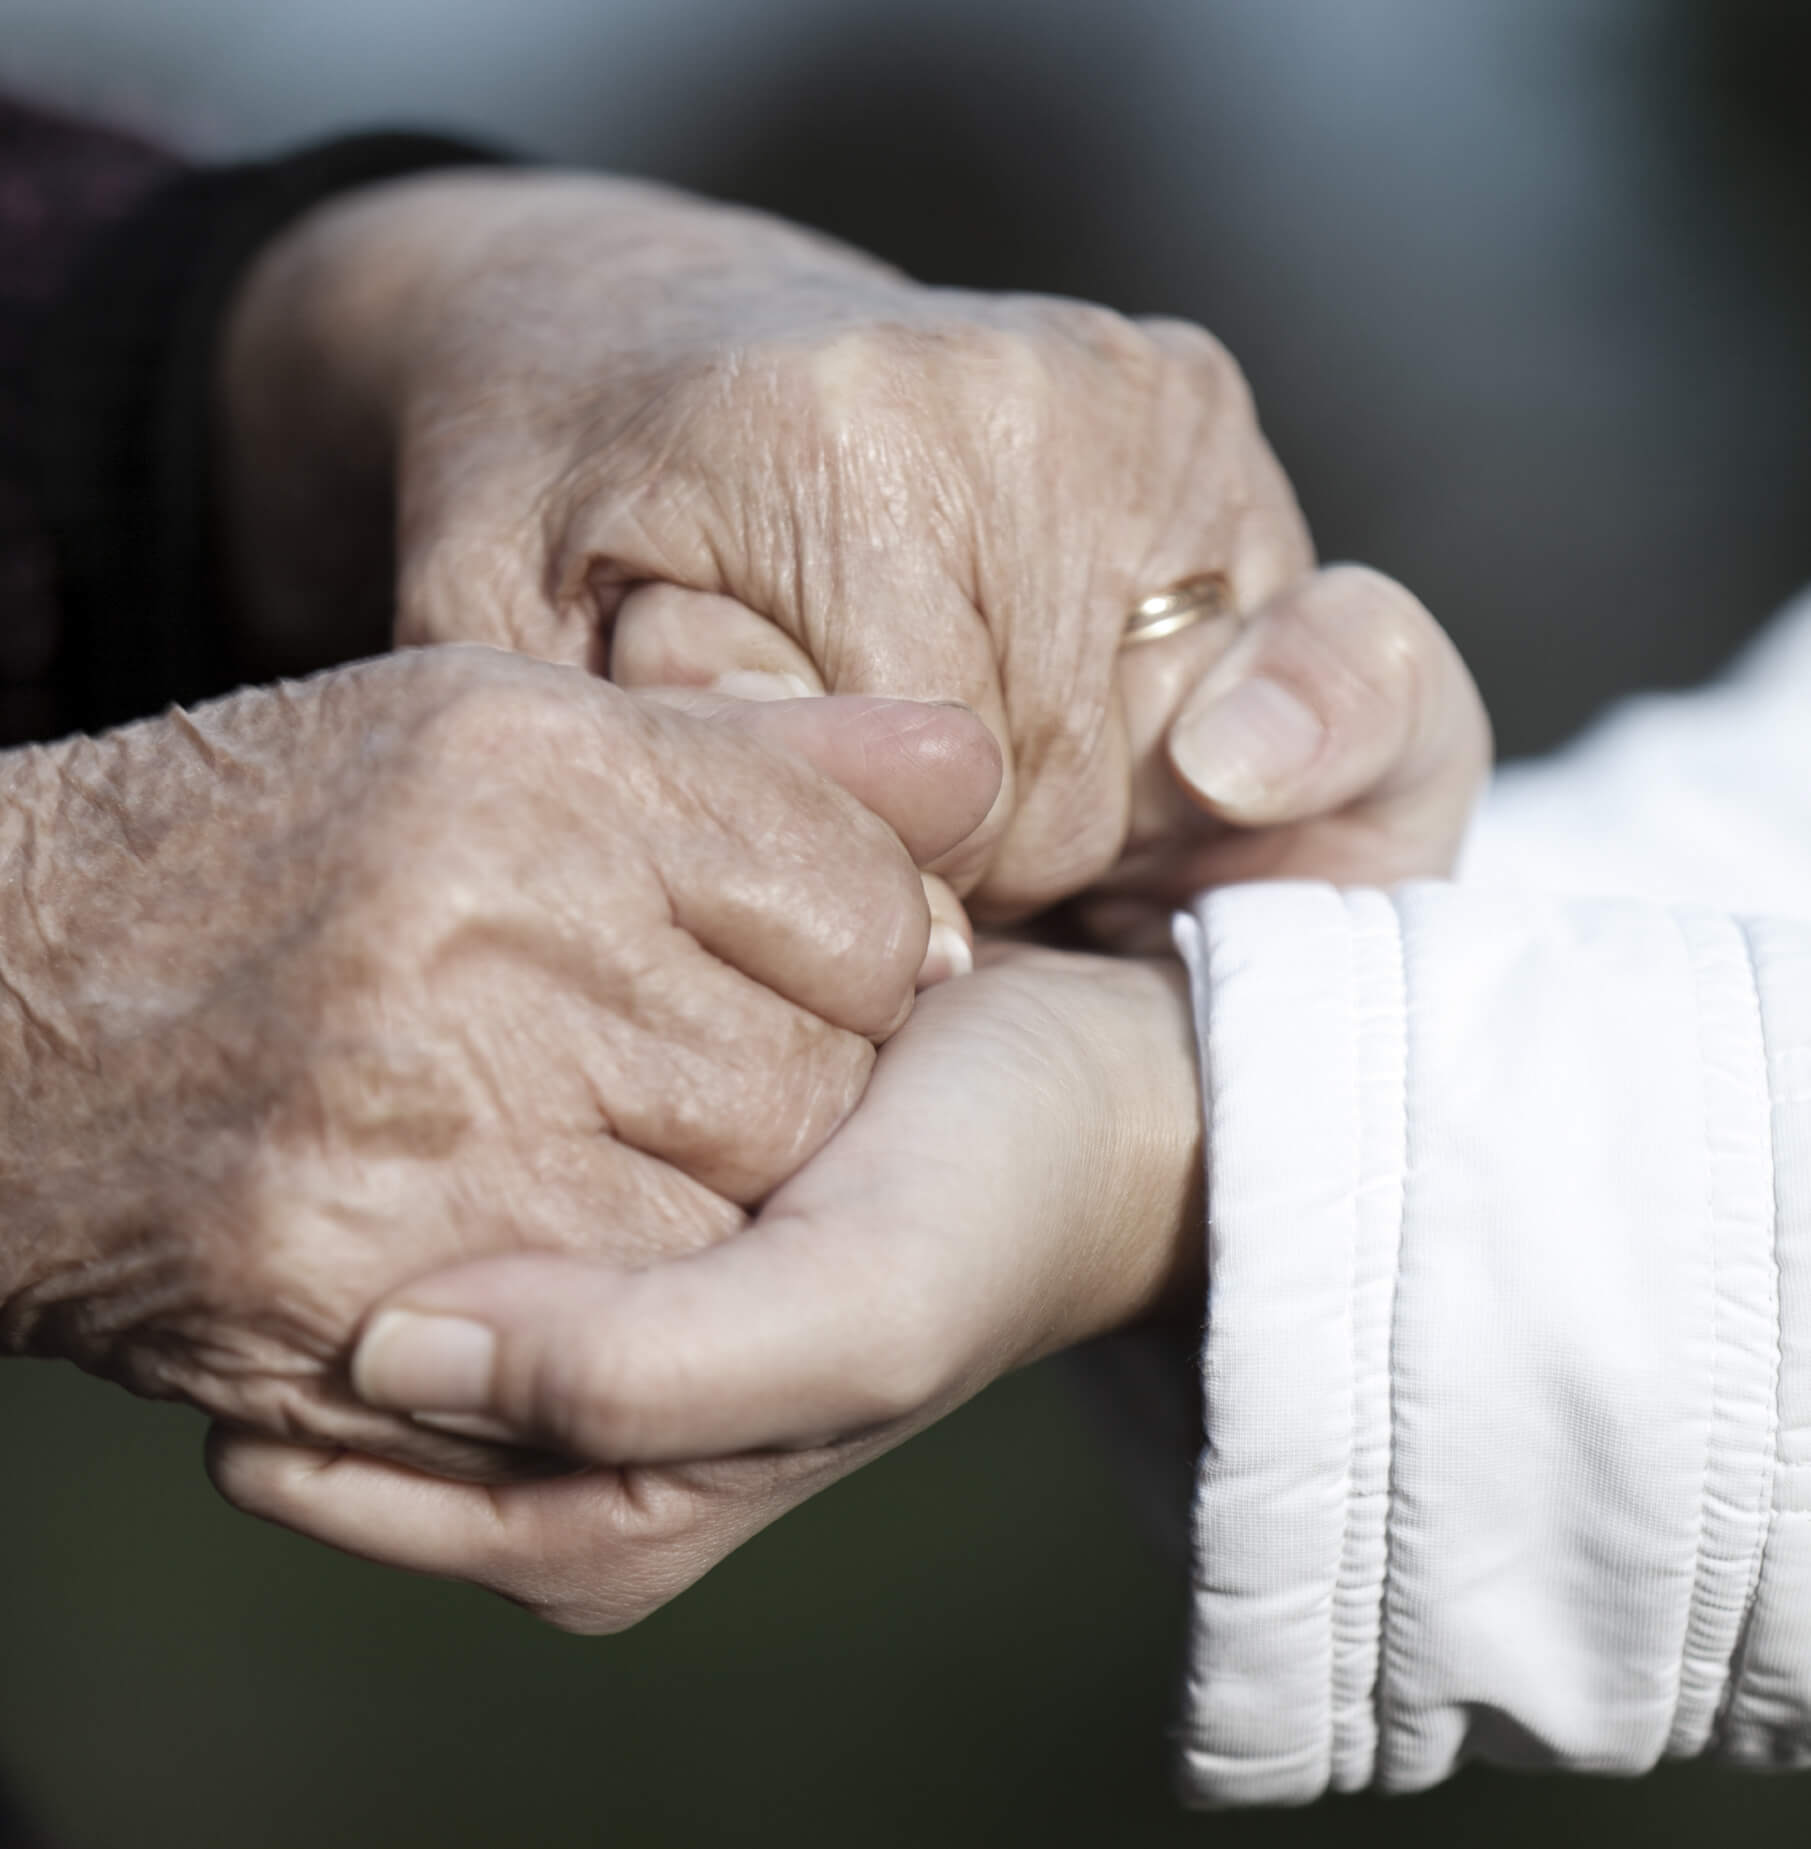 The Other End of the Housing Market: Housing for Older People